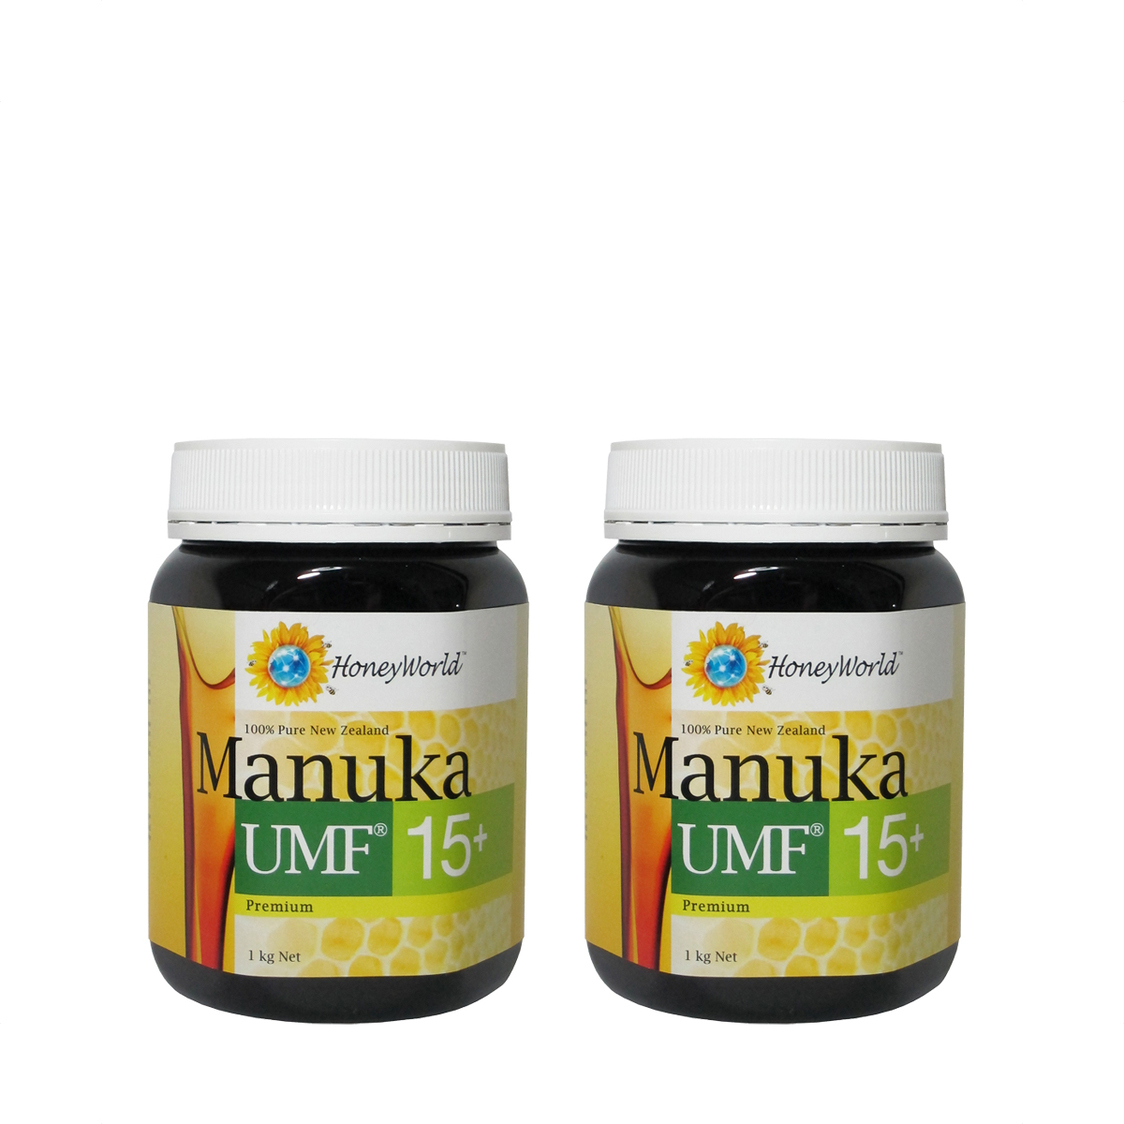 Honey World Manuka UMF15 1kg Bundle of 2